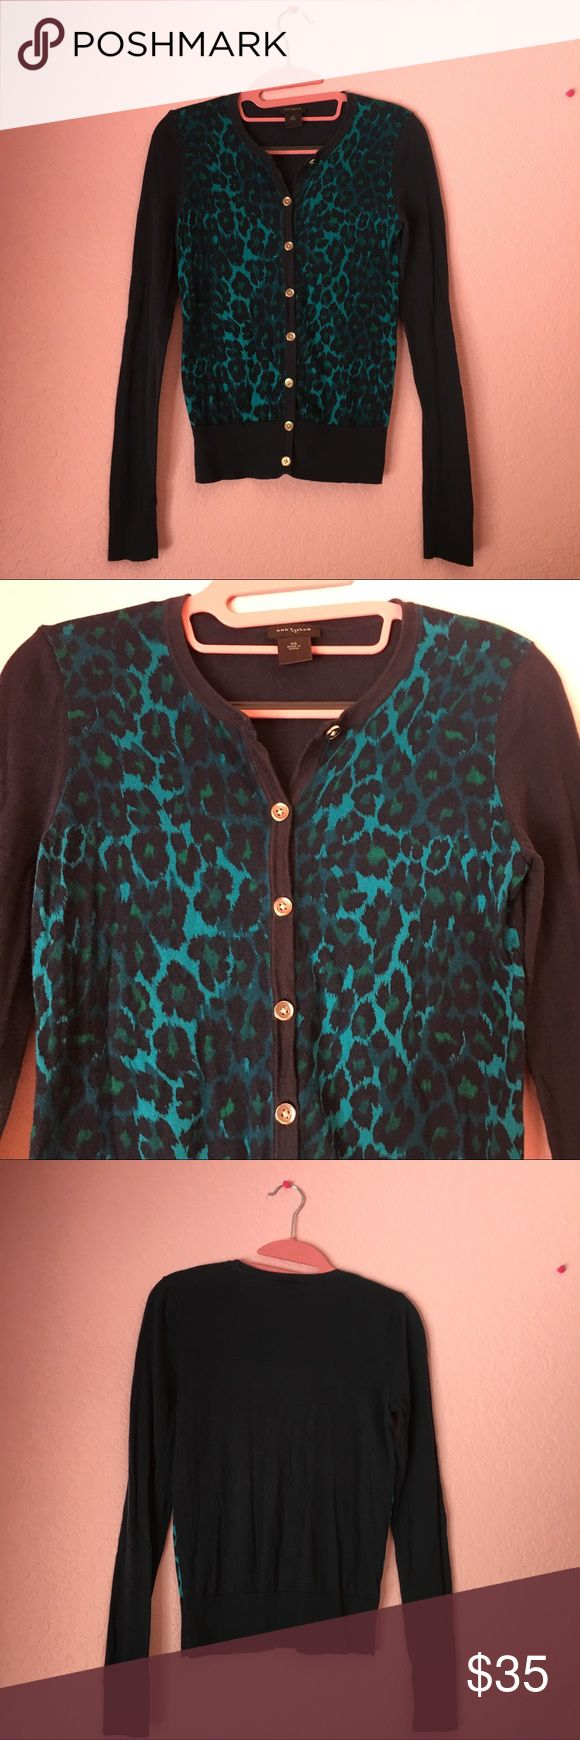 😍Ann Taylor blue leopard print cardigan  😍 Gorgeous Ann Taylor leopard print in teal gemstone 🌸 so comfy and light  💕🌸🌷It has beautiful silver buttons 💕 Ann Taylor Sweaters Cardigans